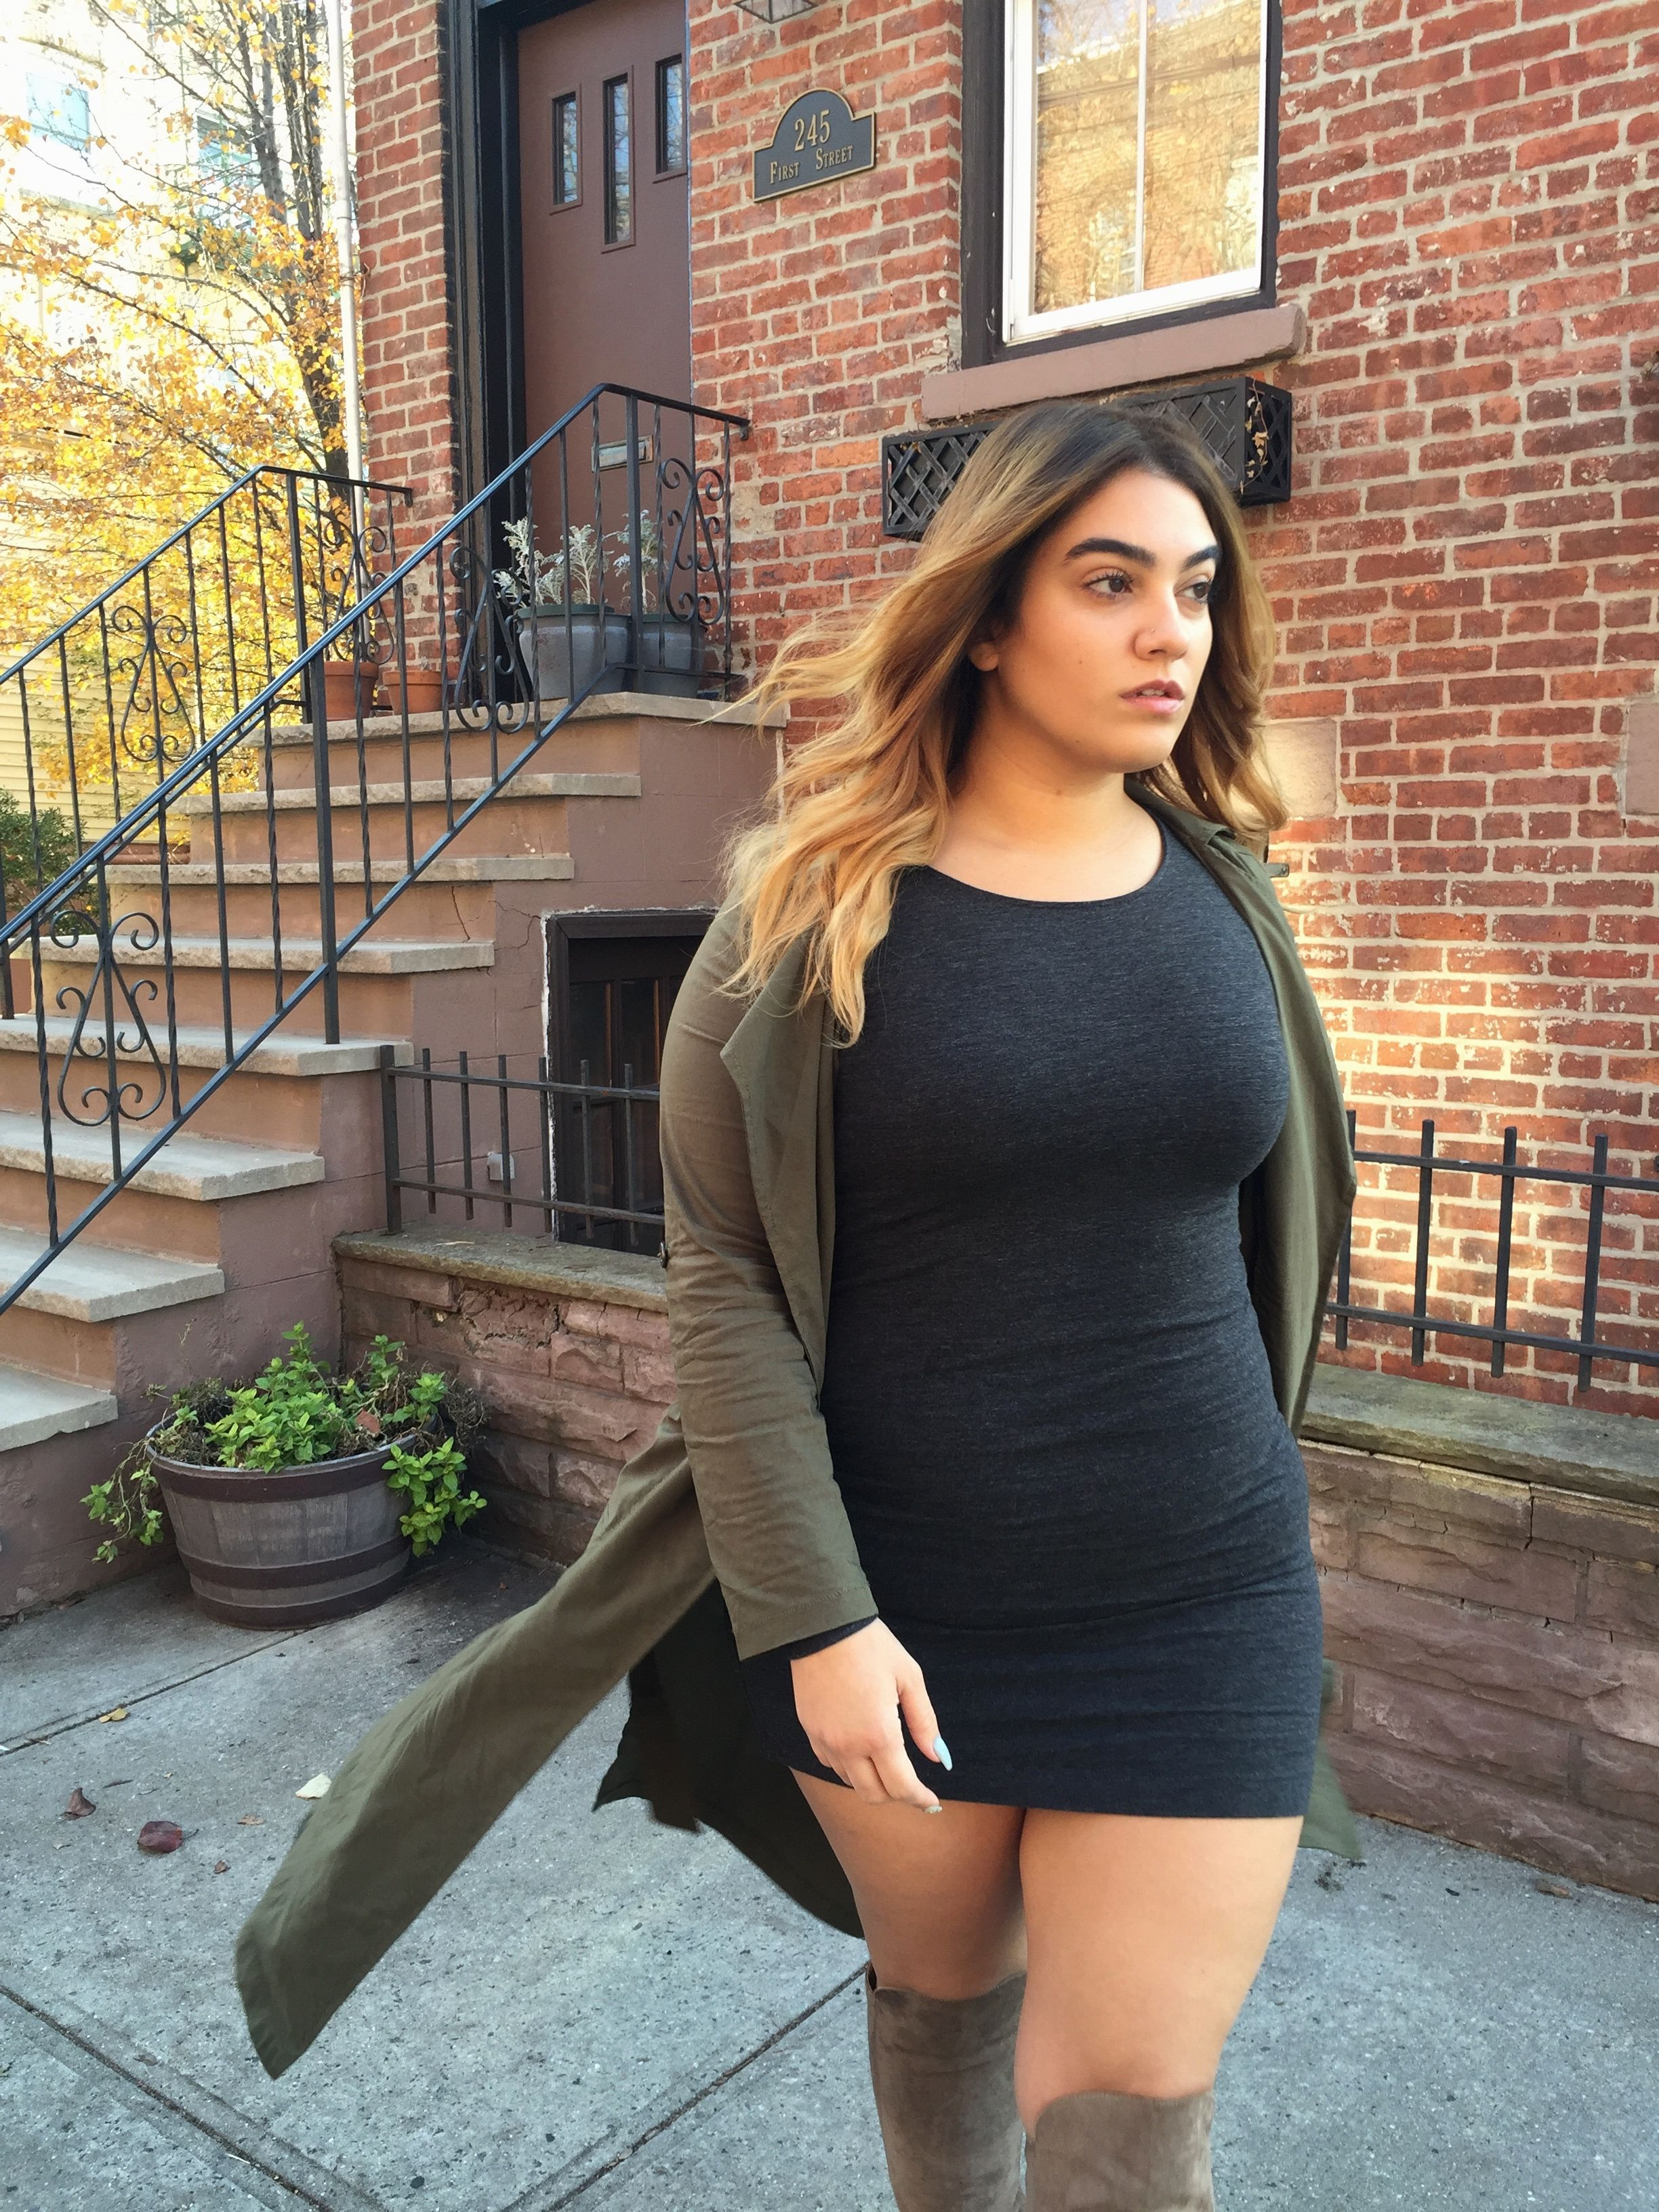 fall looks | Nadia Aboulhosn | Pinterest | Nadia aboulhosn ...